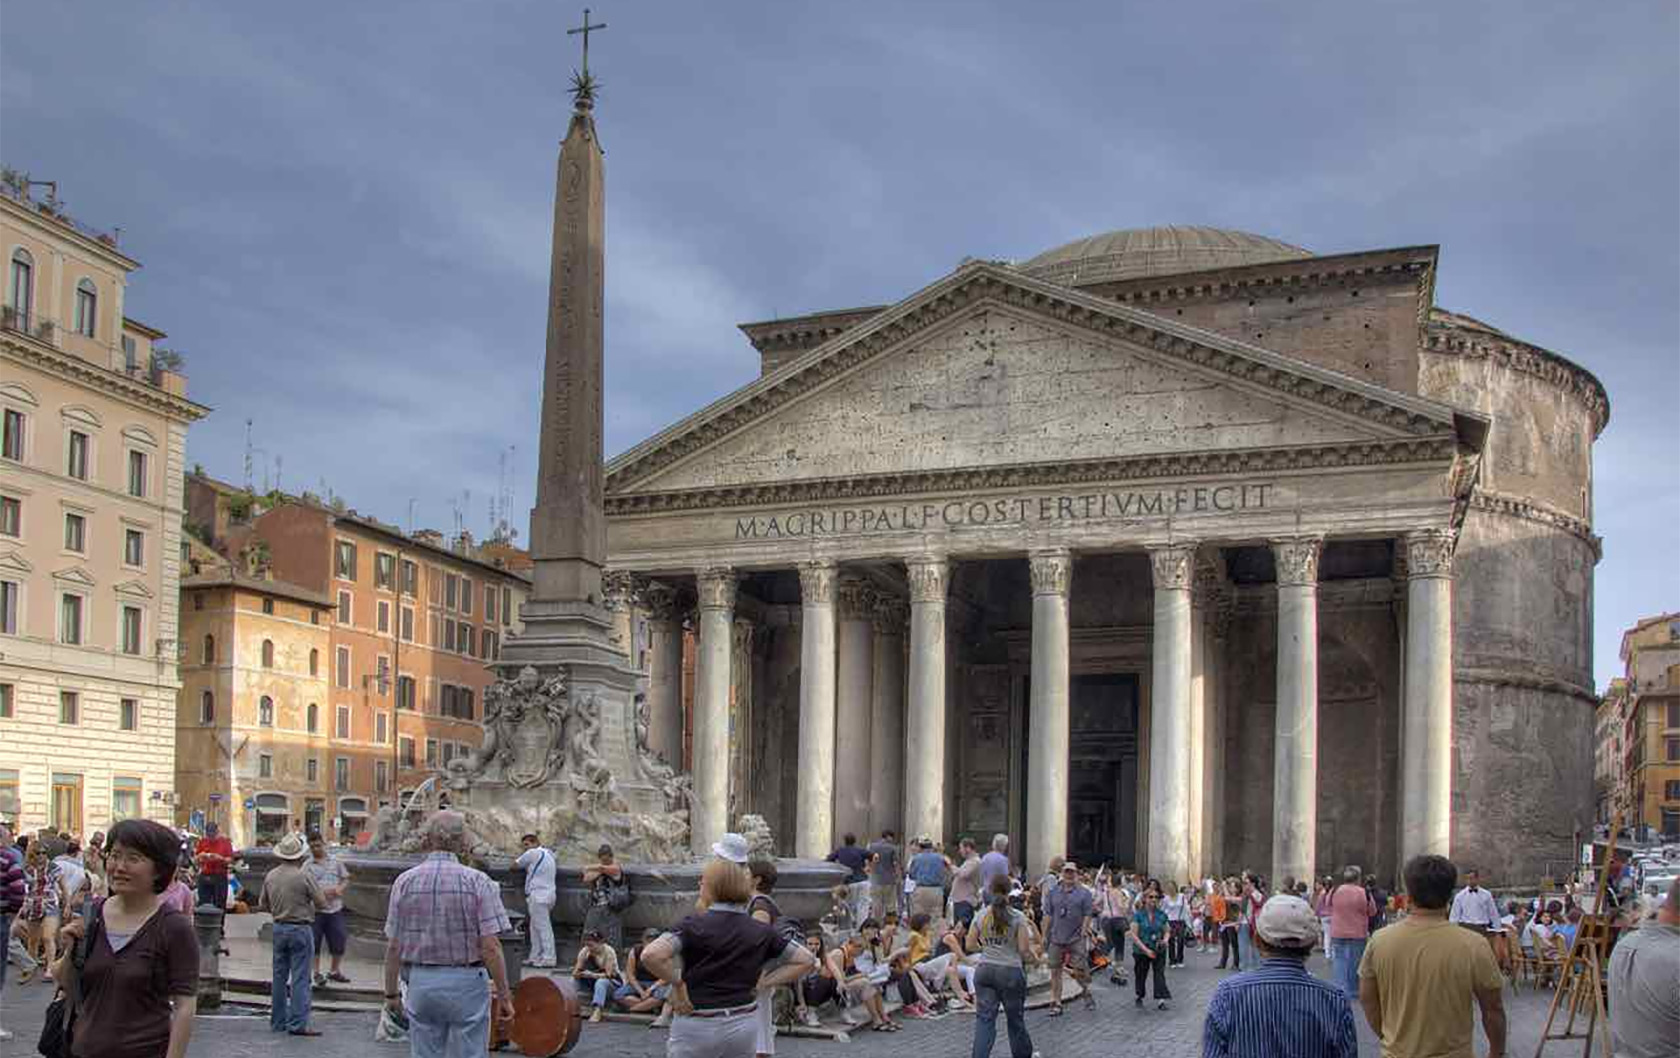 Rainy Day in Rome? Five Great Ways to Enjoy the Experience